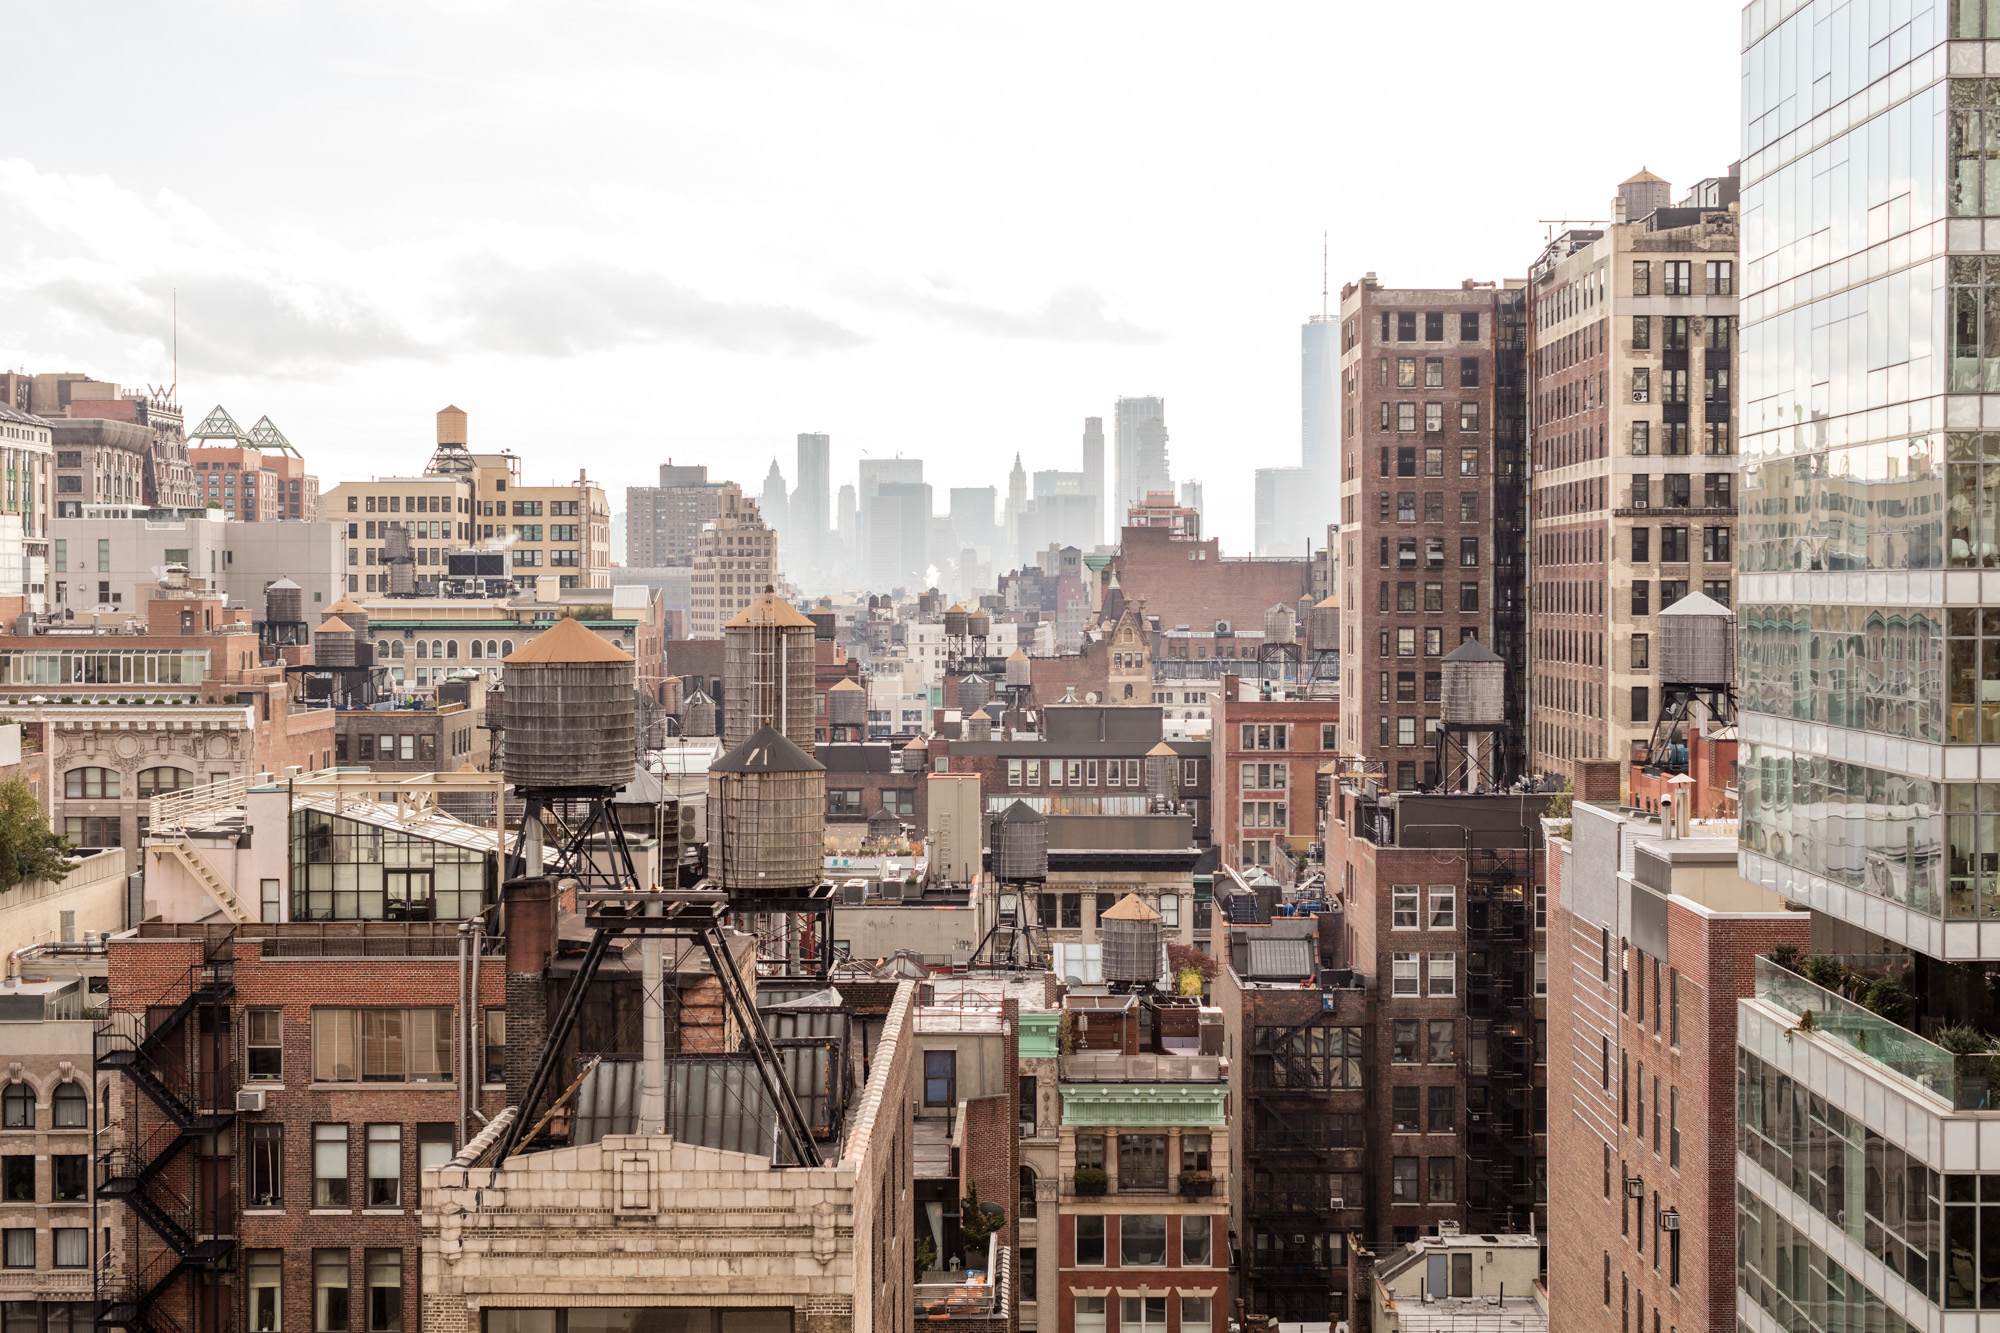 An aerial view of New York City buildings on a hazy day.